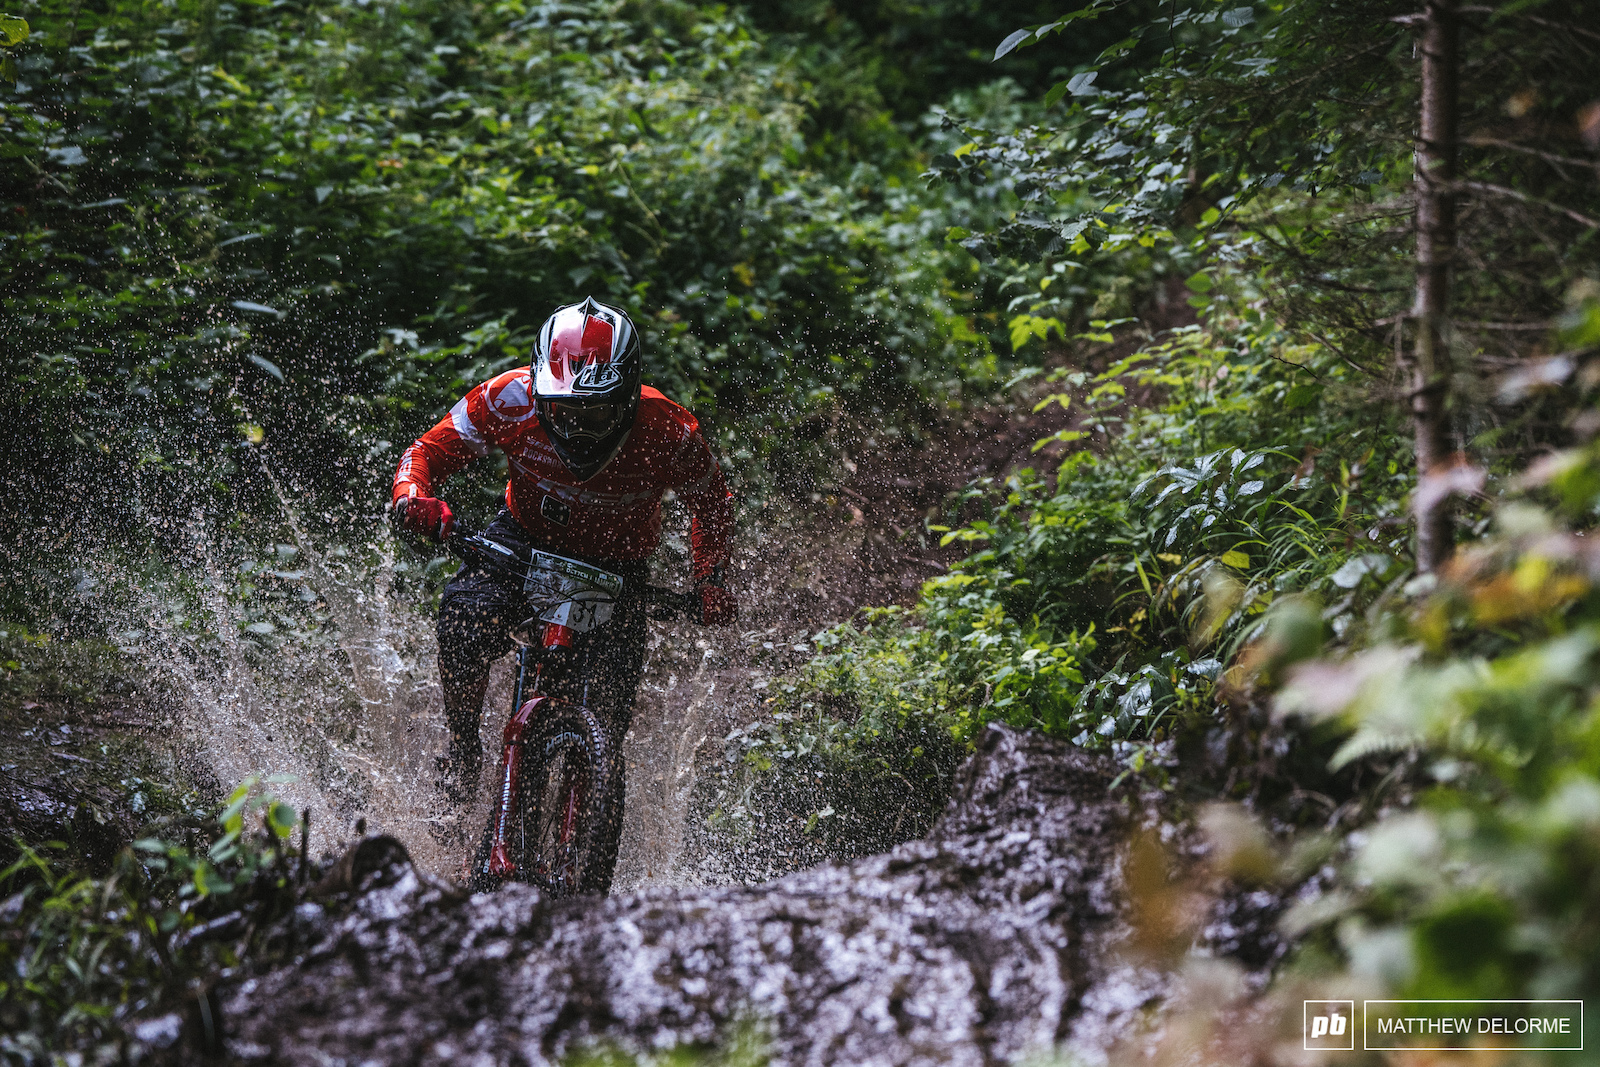 Ruaridh Cunningham is getting into the groove. Sure he had a crash or two but he sits in 8th after day one.